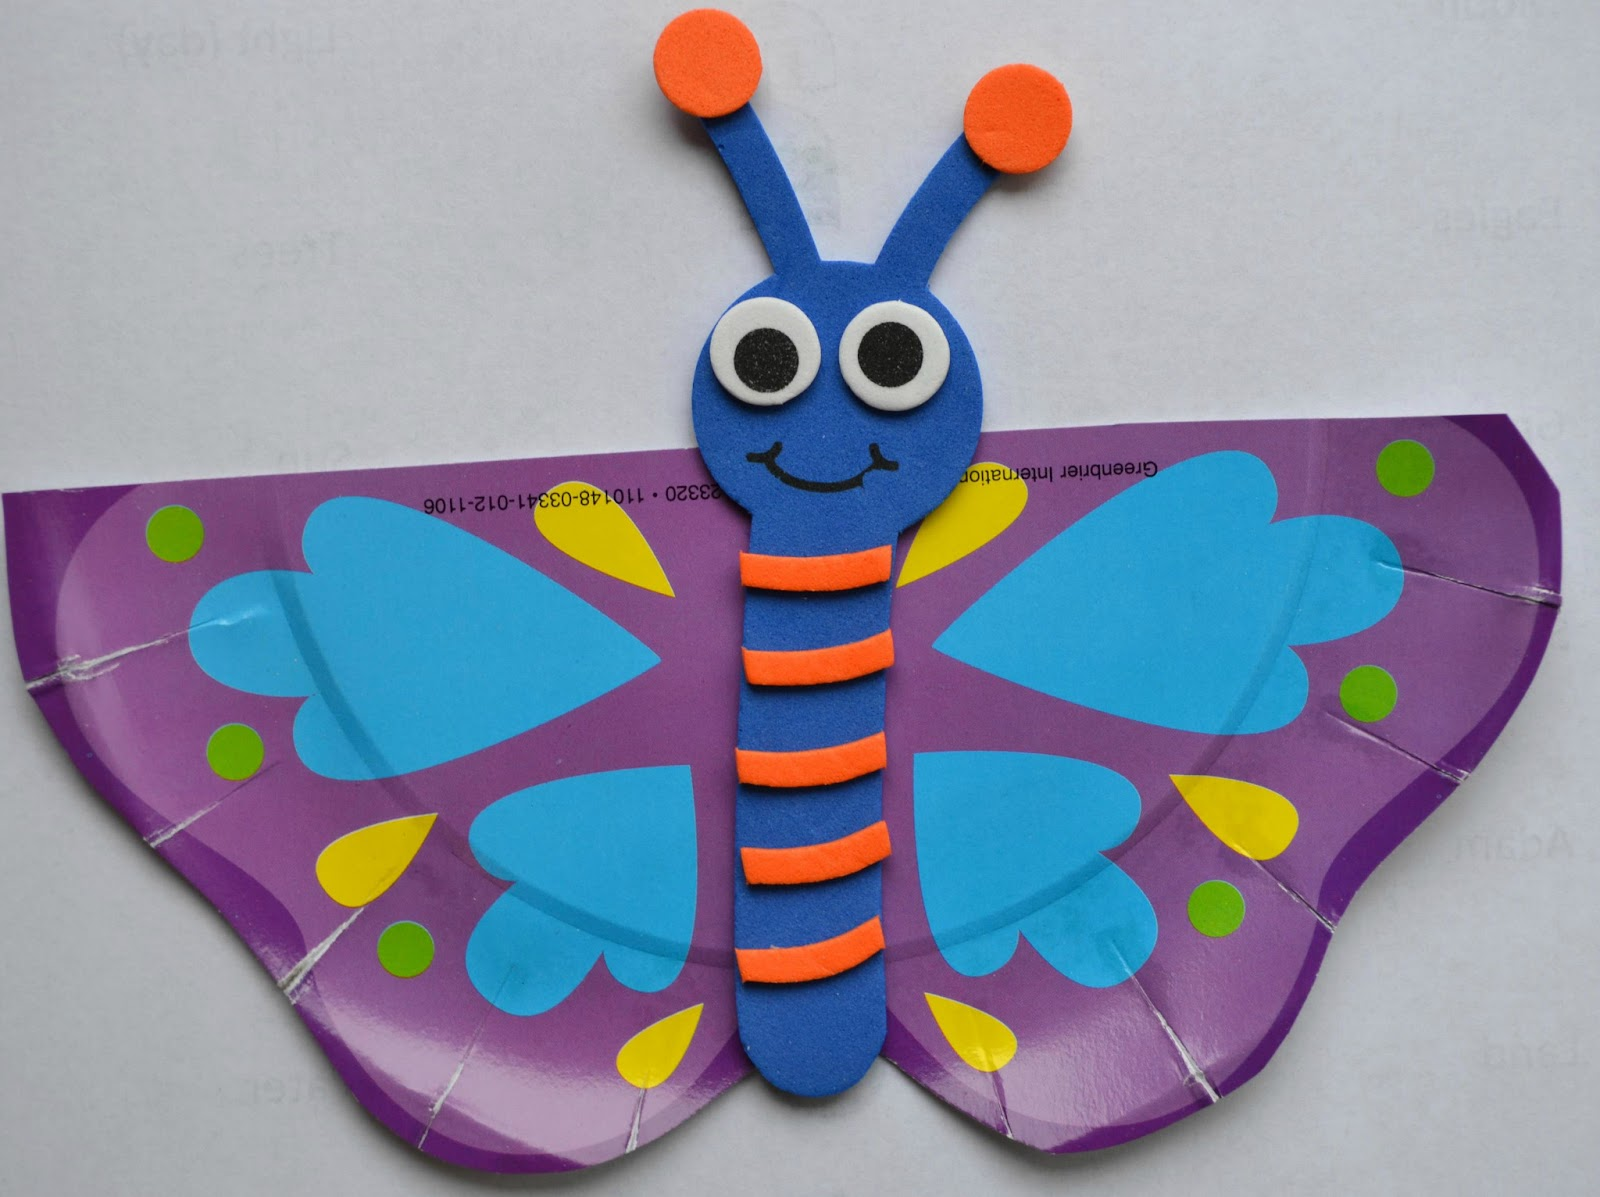 Construction Paper Valentine Crafts For Toddlers